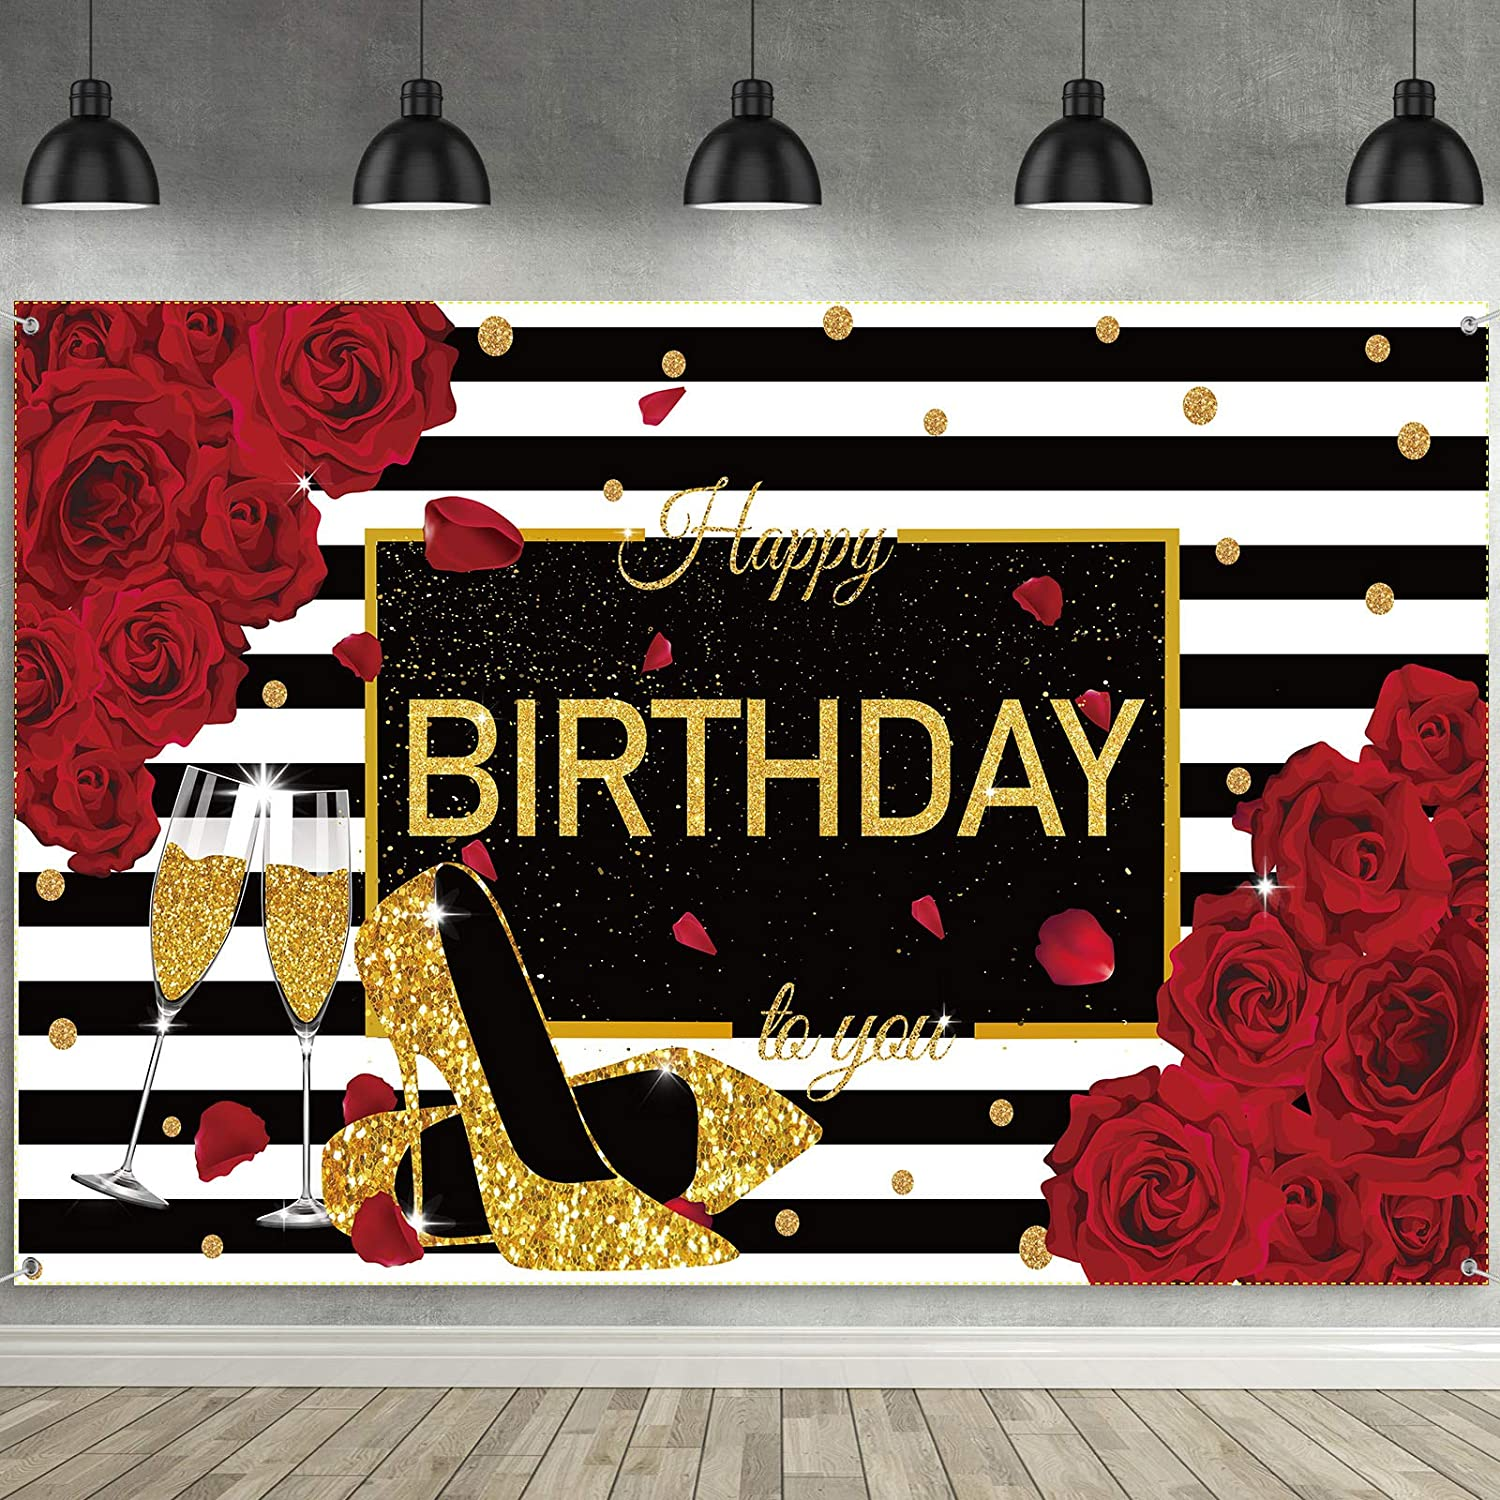 Happy Birthday Backdrop Women Adults Red Rose Party Decorations Golden Heels Champagne Glass Party Banner Background Photography for 30th 40th 50th 60th 70th 80th Party Supplies 72.8 x 43.3 Inch